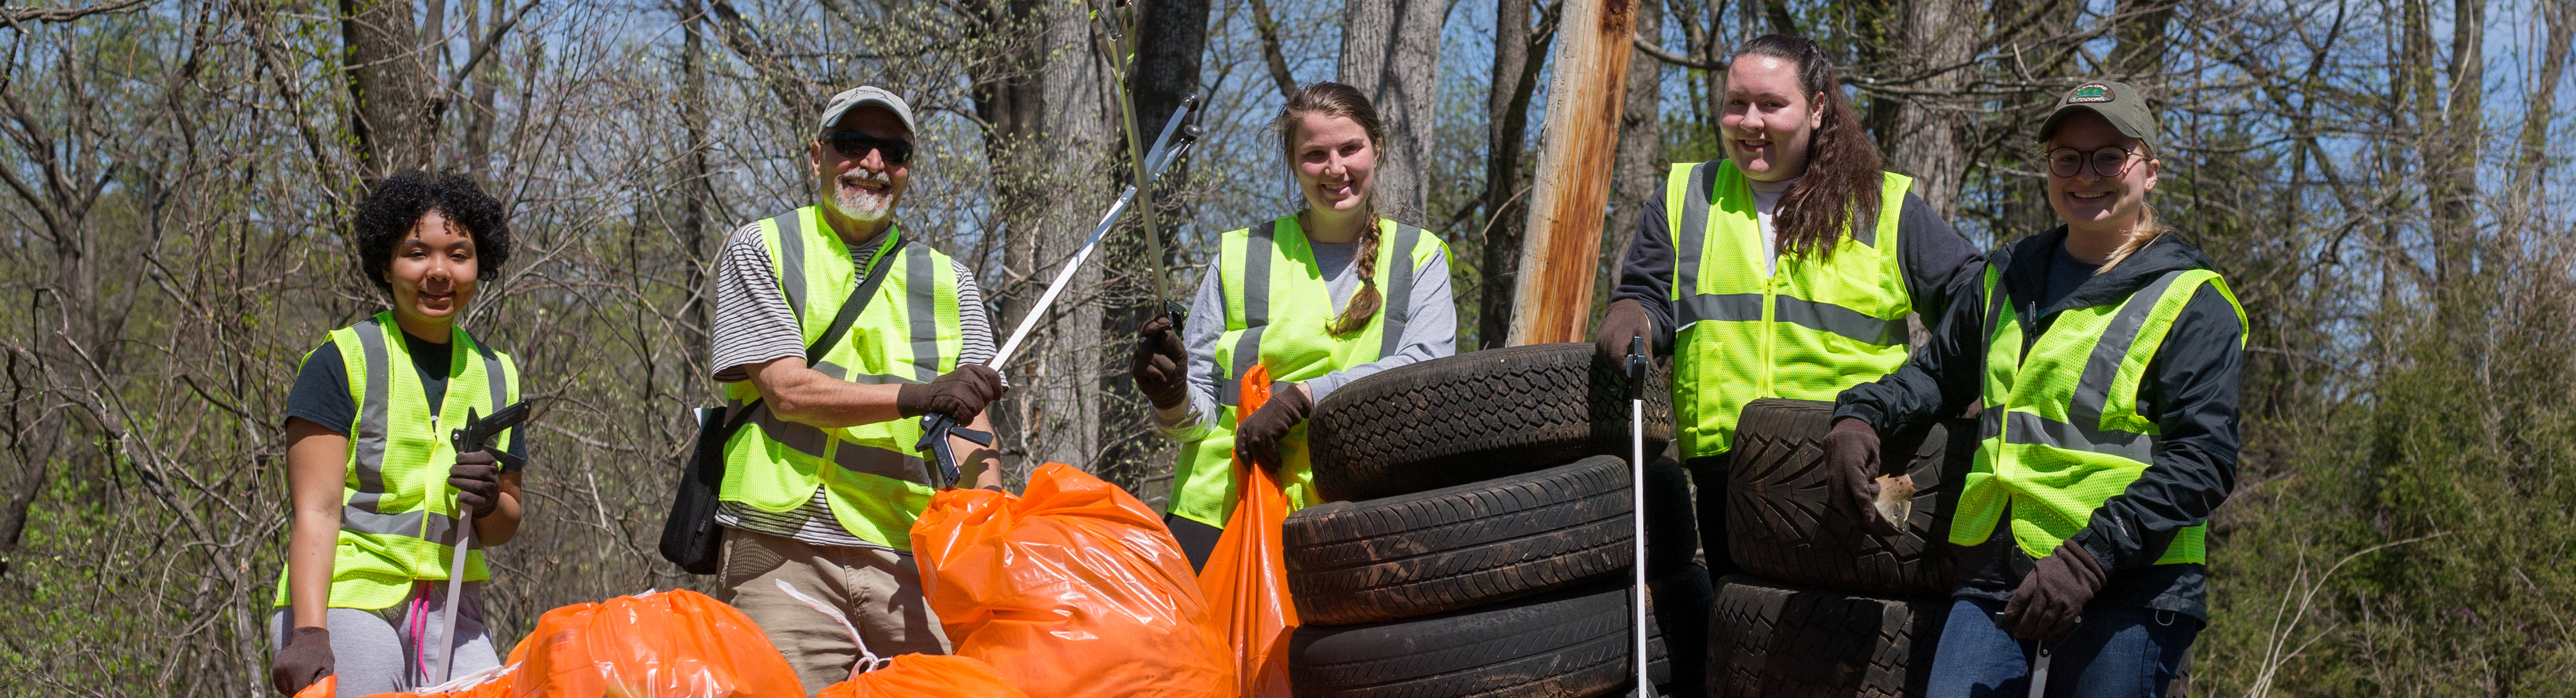 Students out in the community picking up trash.